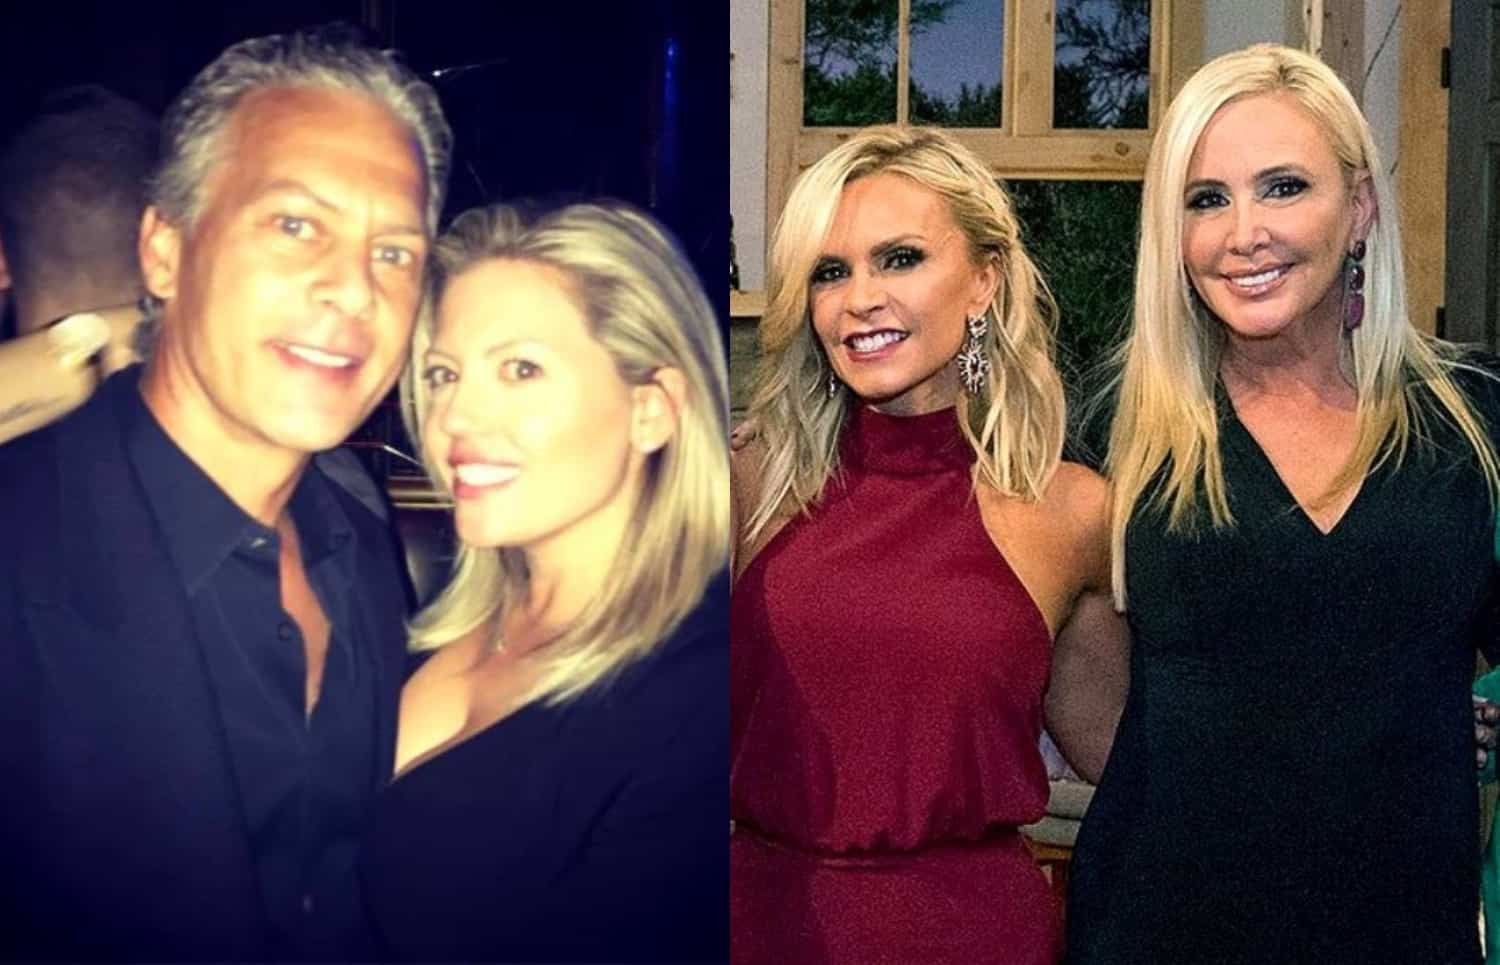 Lesley Cook Responds to RHOC's Tamra Judge Diss